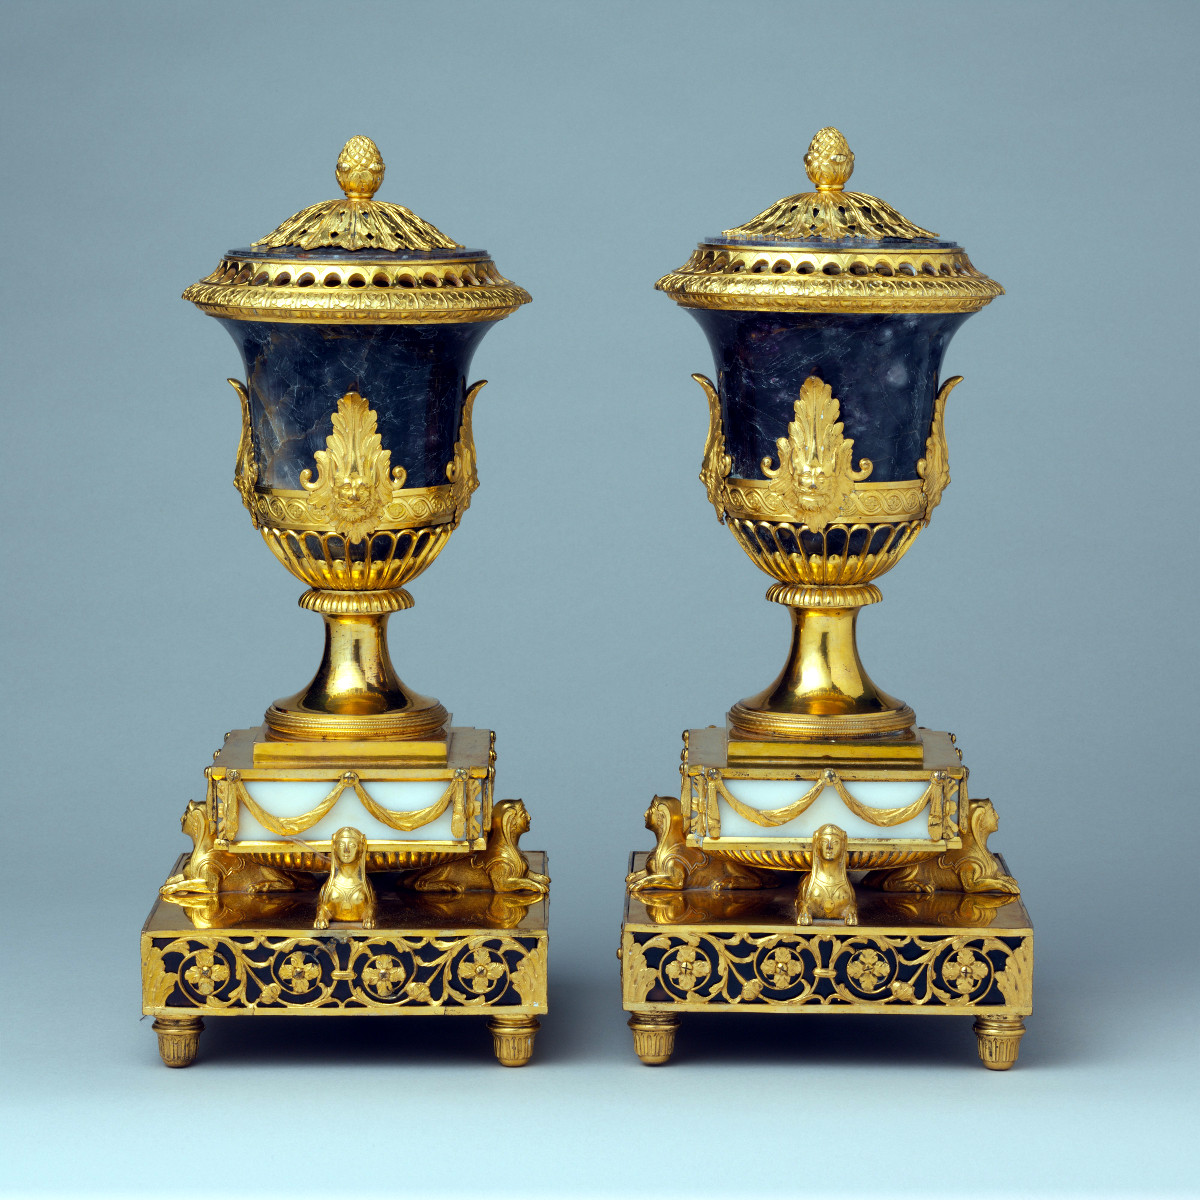 1770. Pair of perfume burners. Matthew Boulton. Credit metmuseum.org